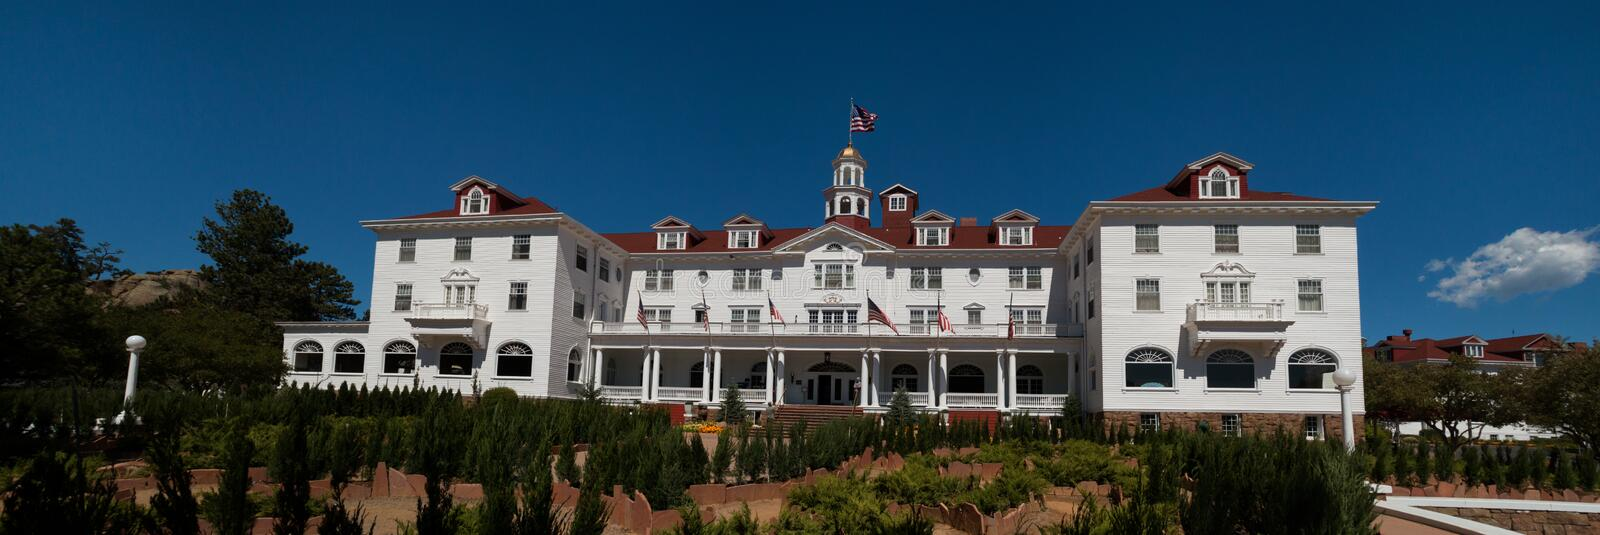 Famous Stanley Hotel in Estes Park, Colorado. The famous Stanley Hotel in Estes Park, Colorado, of the Rocky Mountain National Park was built by Freelan Oscar royalty free stock image